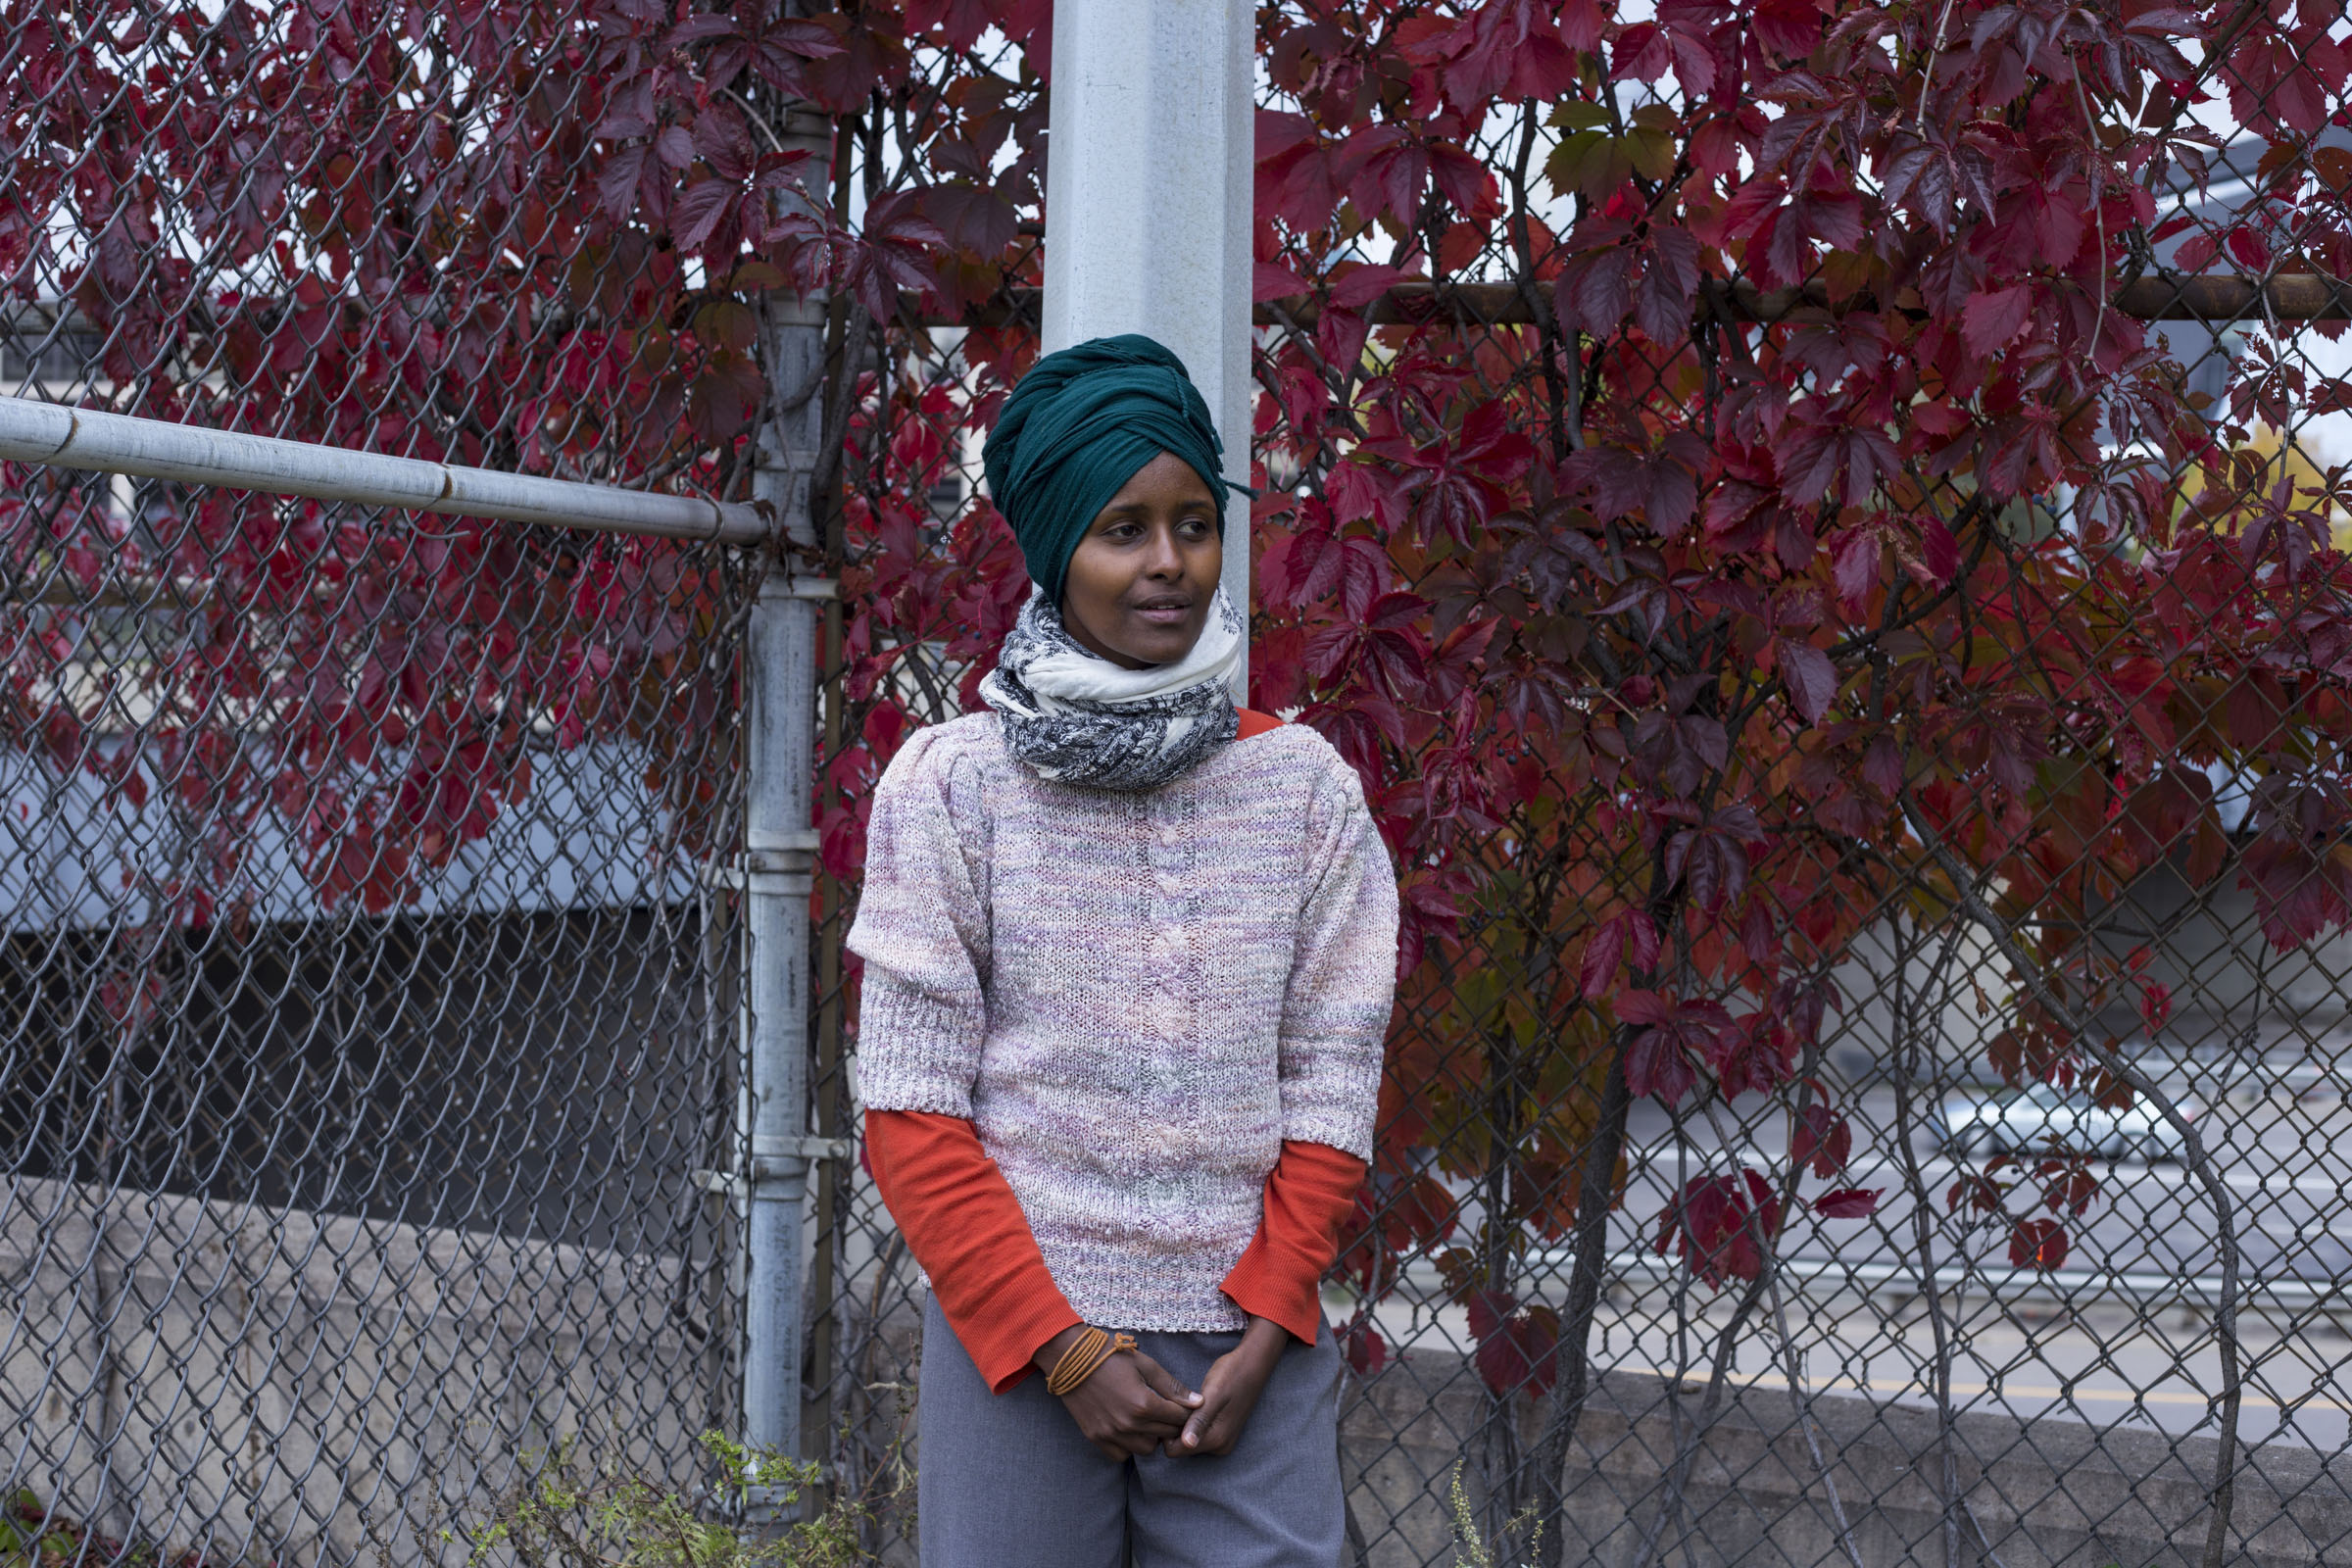 Multimedia and performance artist Ifrah Mansour, 30, outside of the Brian Coyle Center in the Cedar-Riverside neighborhood of Minneapolis, Minn., on Monday, October 9, 2017. (Photo by Brittany Greeson)